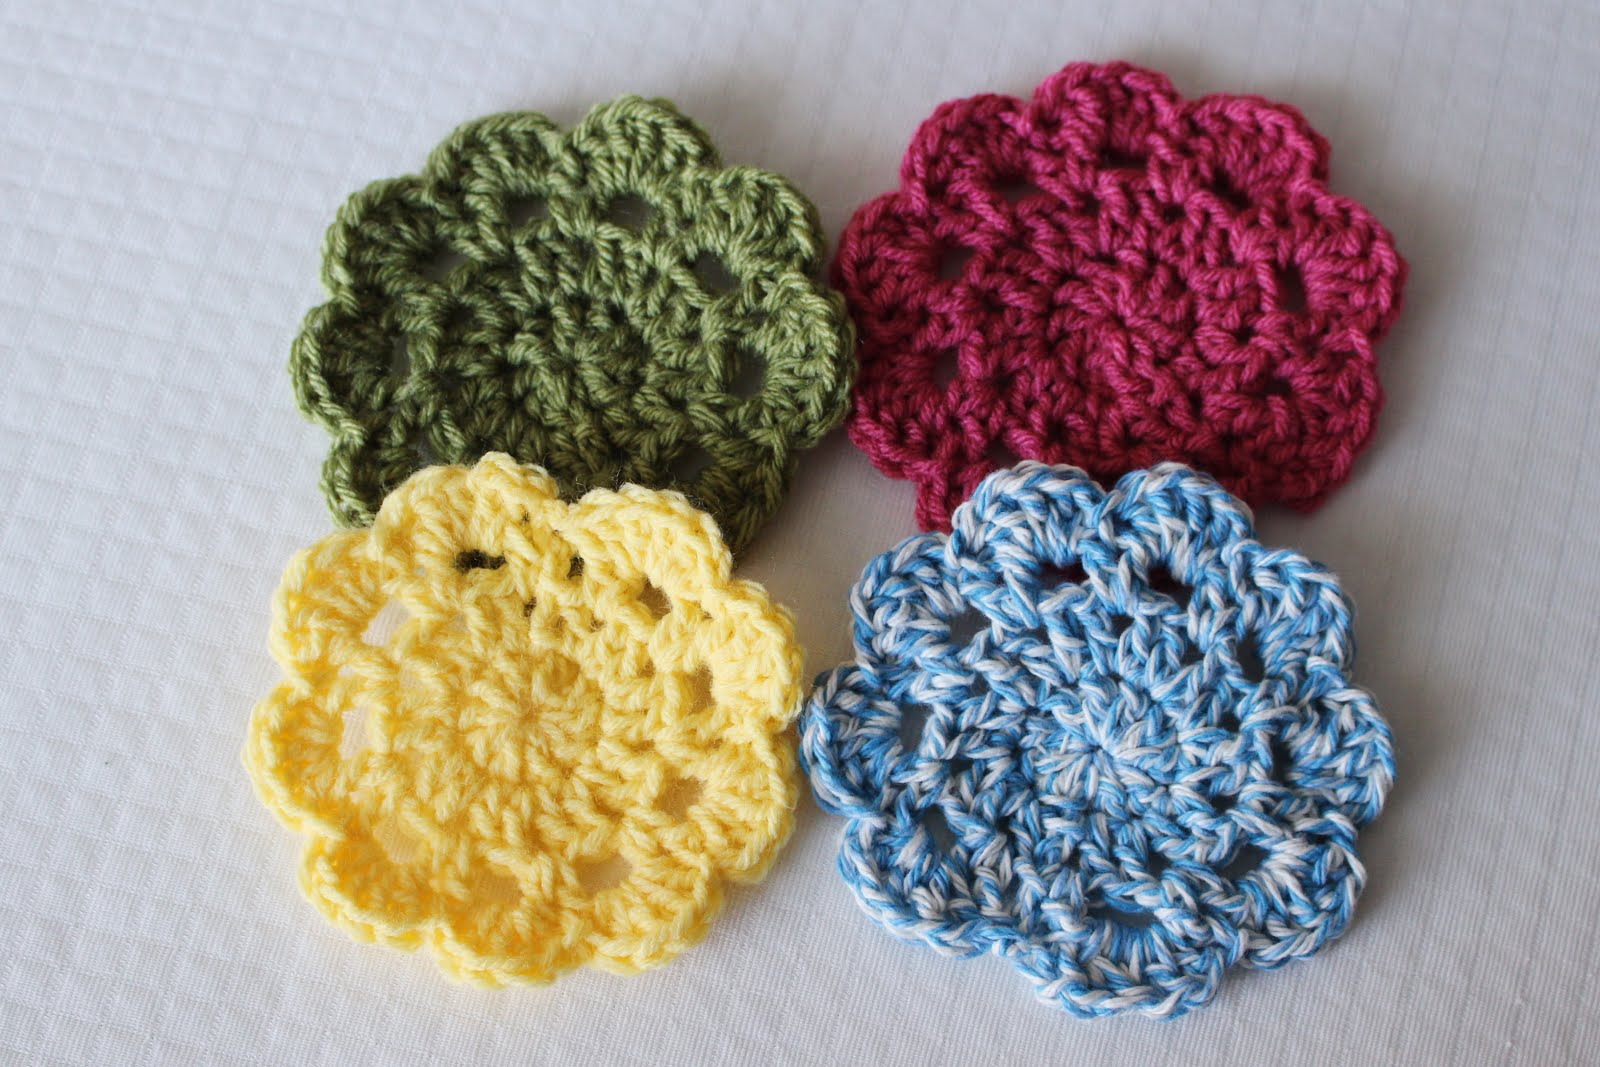 Easy Crochet Coasters: Great for Beginners! - Sewrella